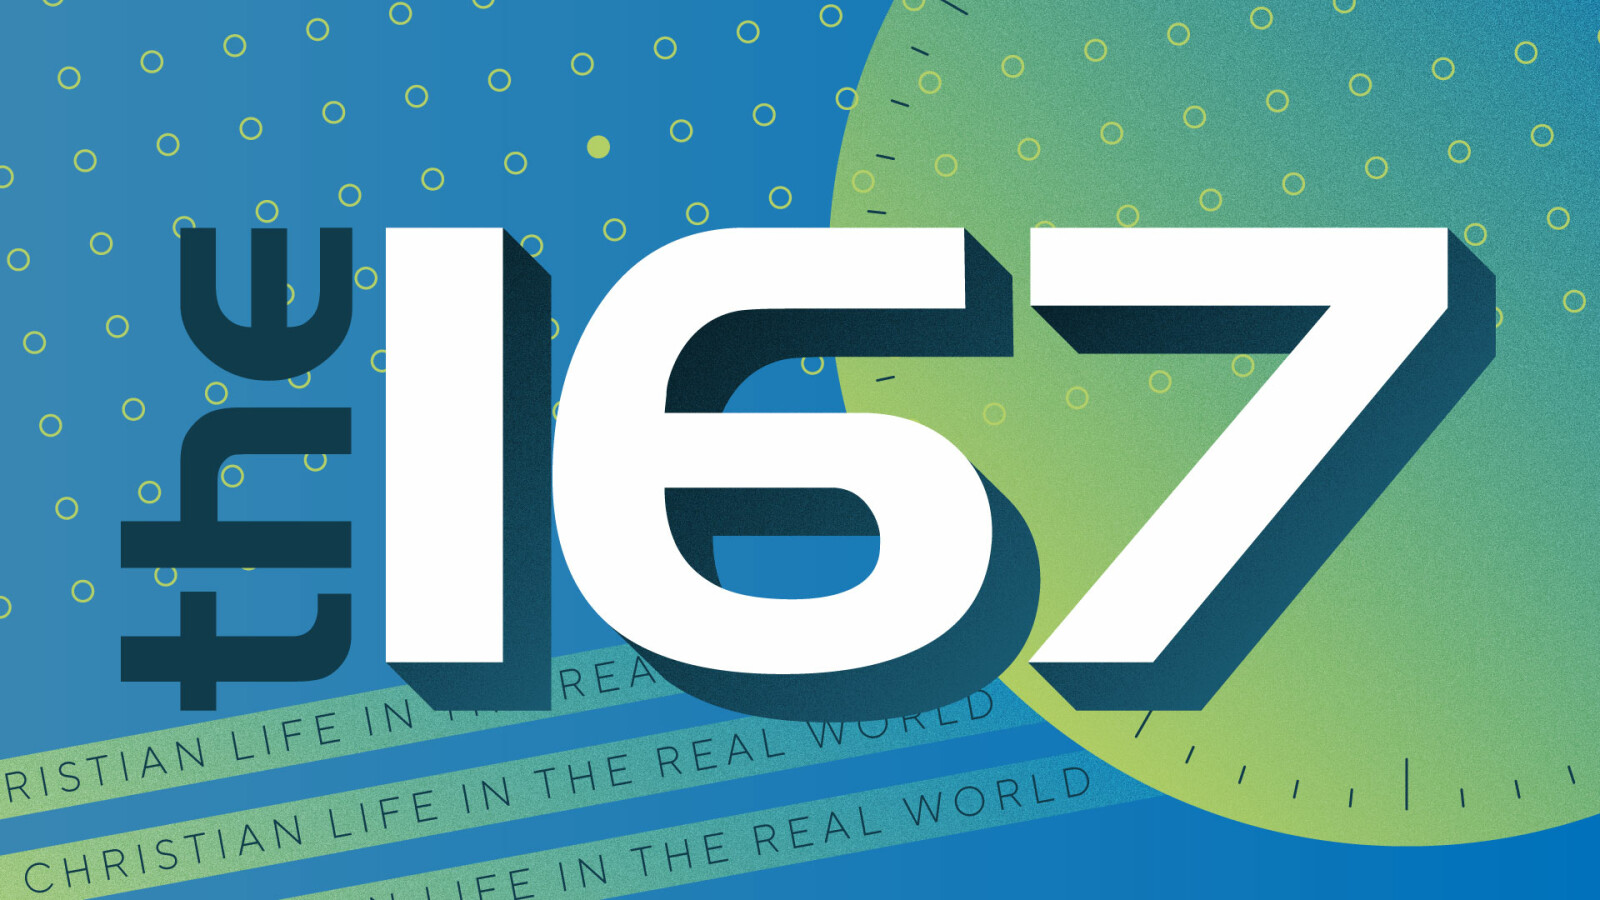 The 167